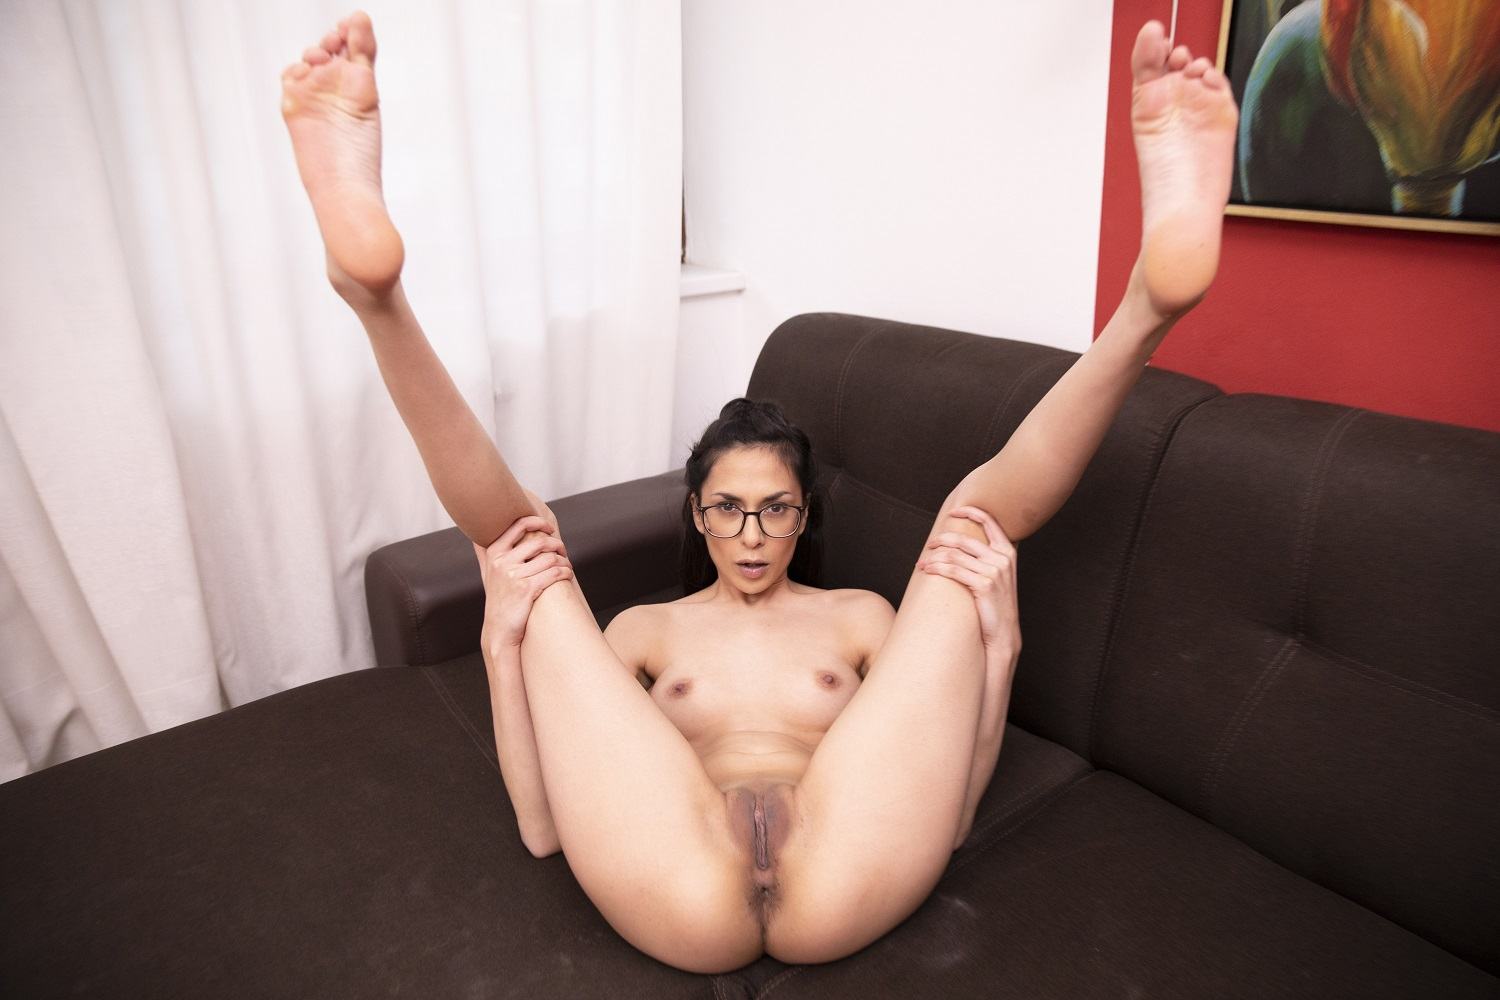 Sporty Teen With Glasses Gets Off On Her Couch